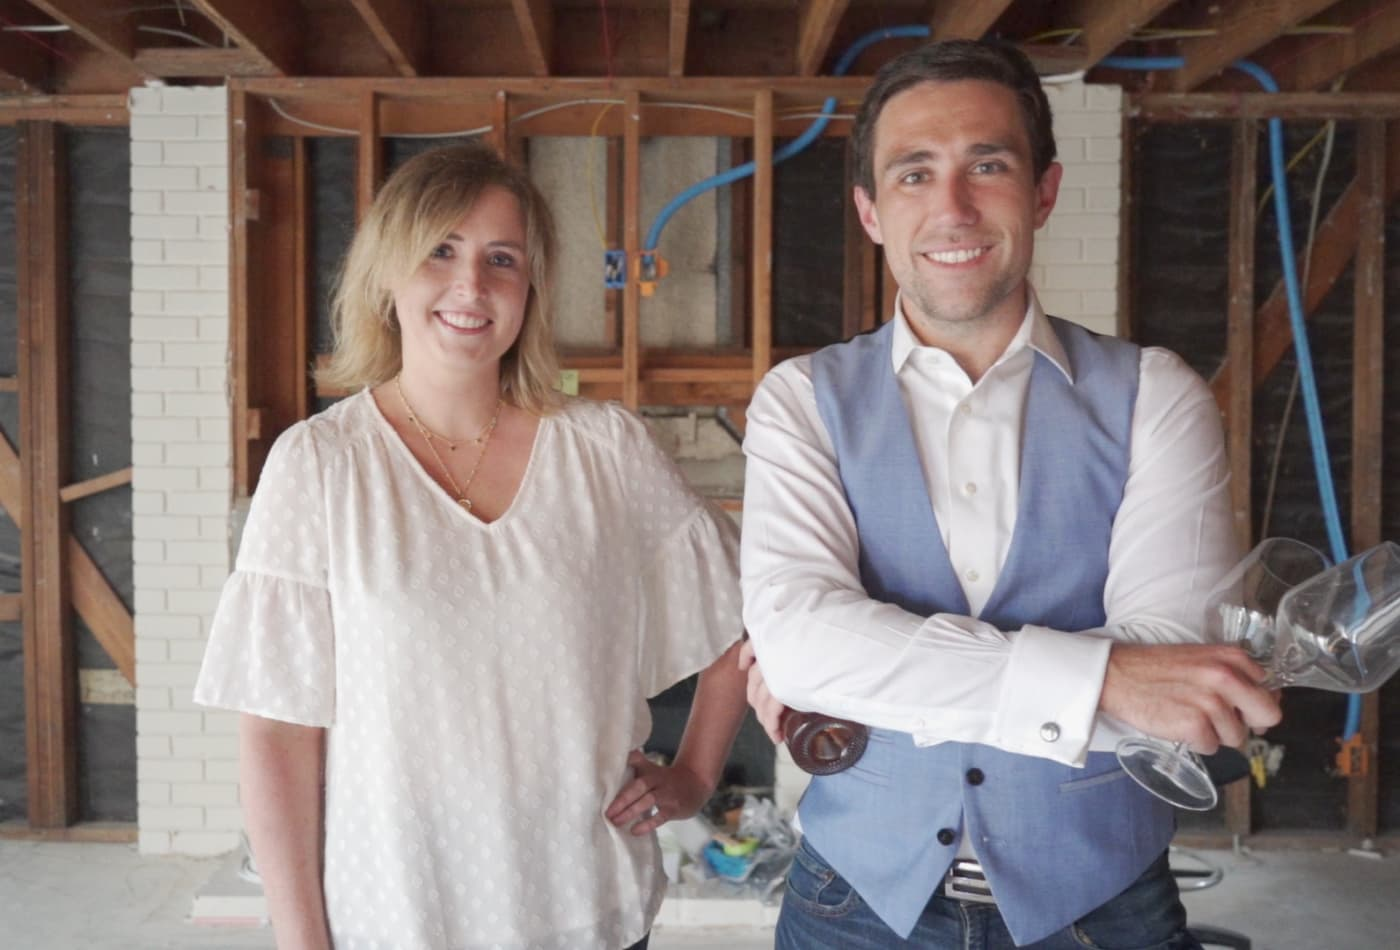 This millennial couple earns $6 million a year from YouTube and real estate—here's how they spend their money